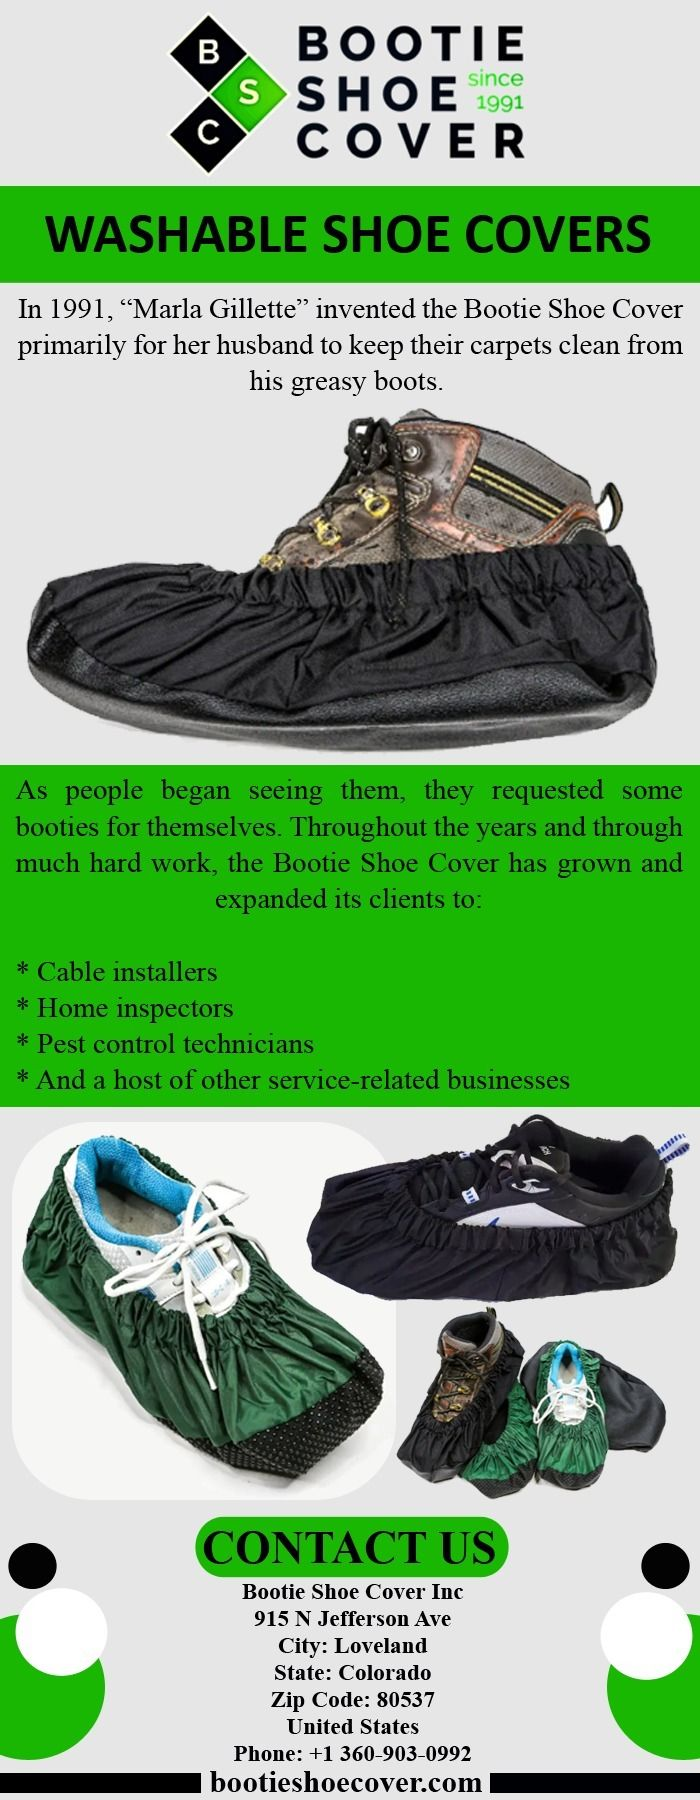 Washable shoe covers designed h - bootieshoecover   ello